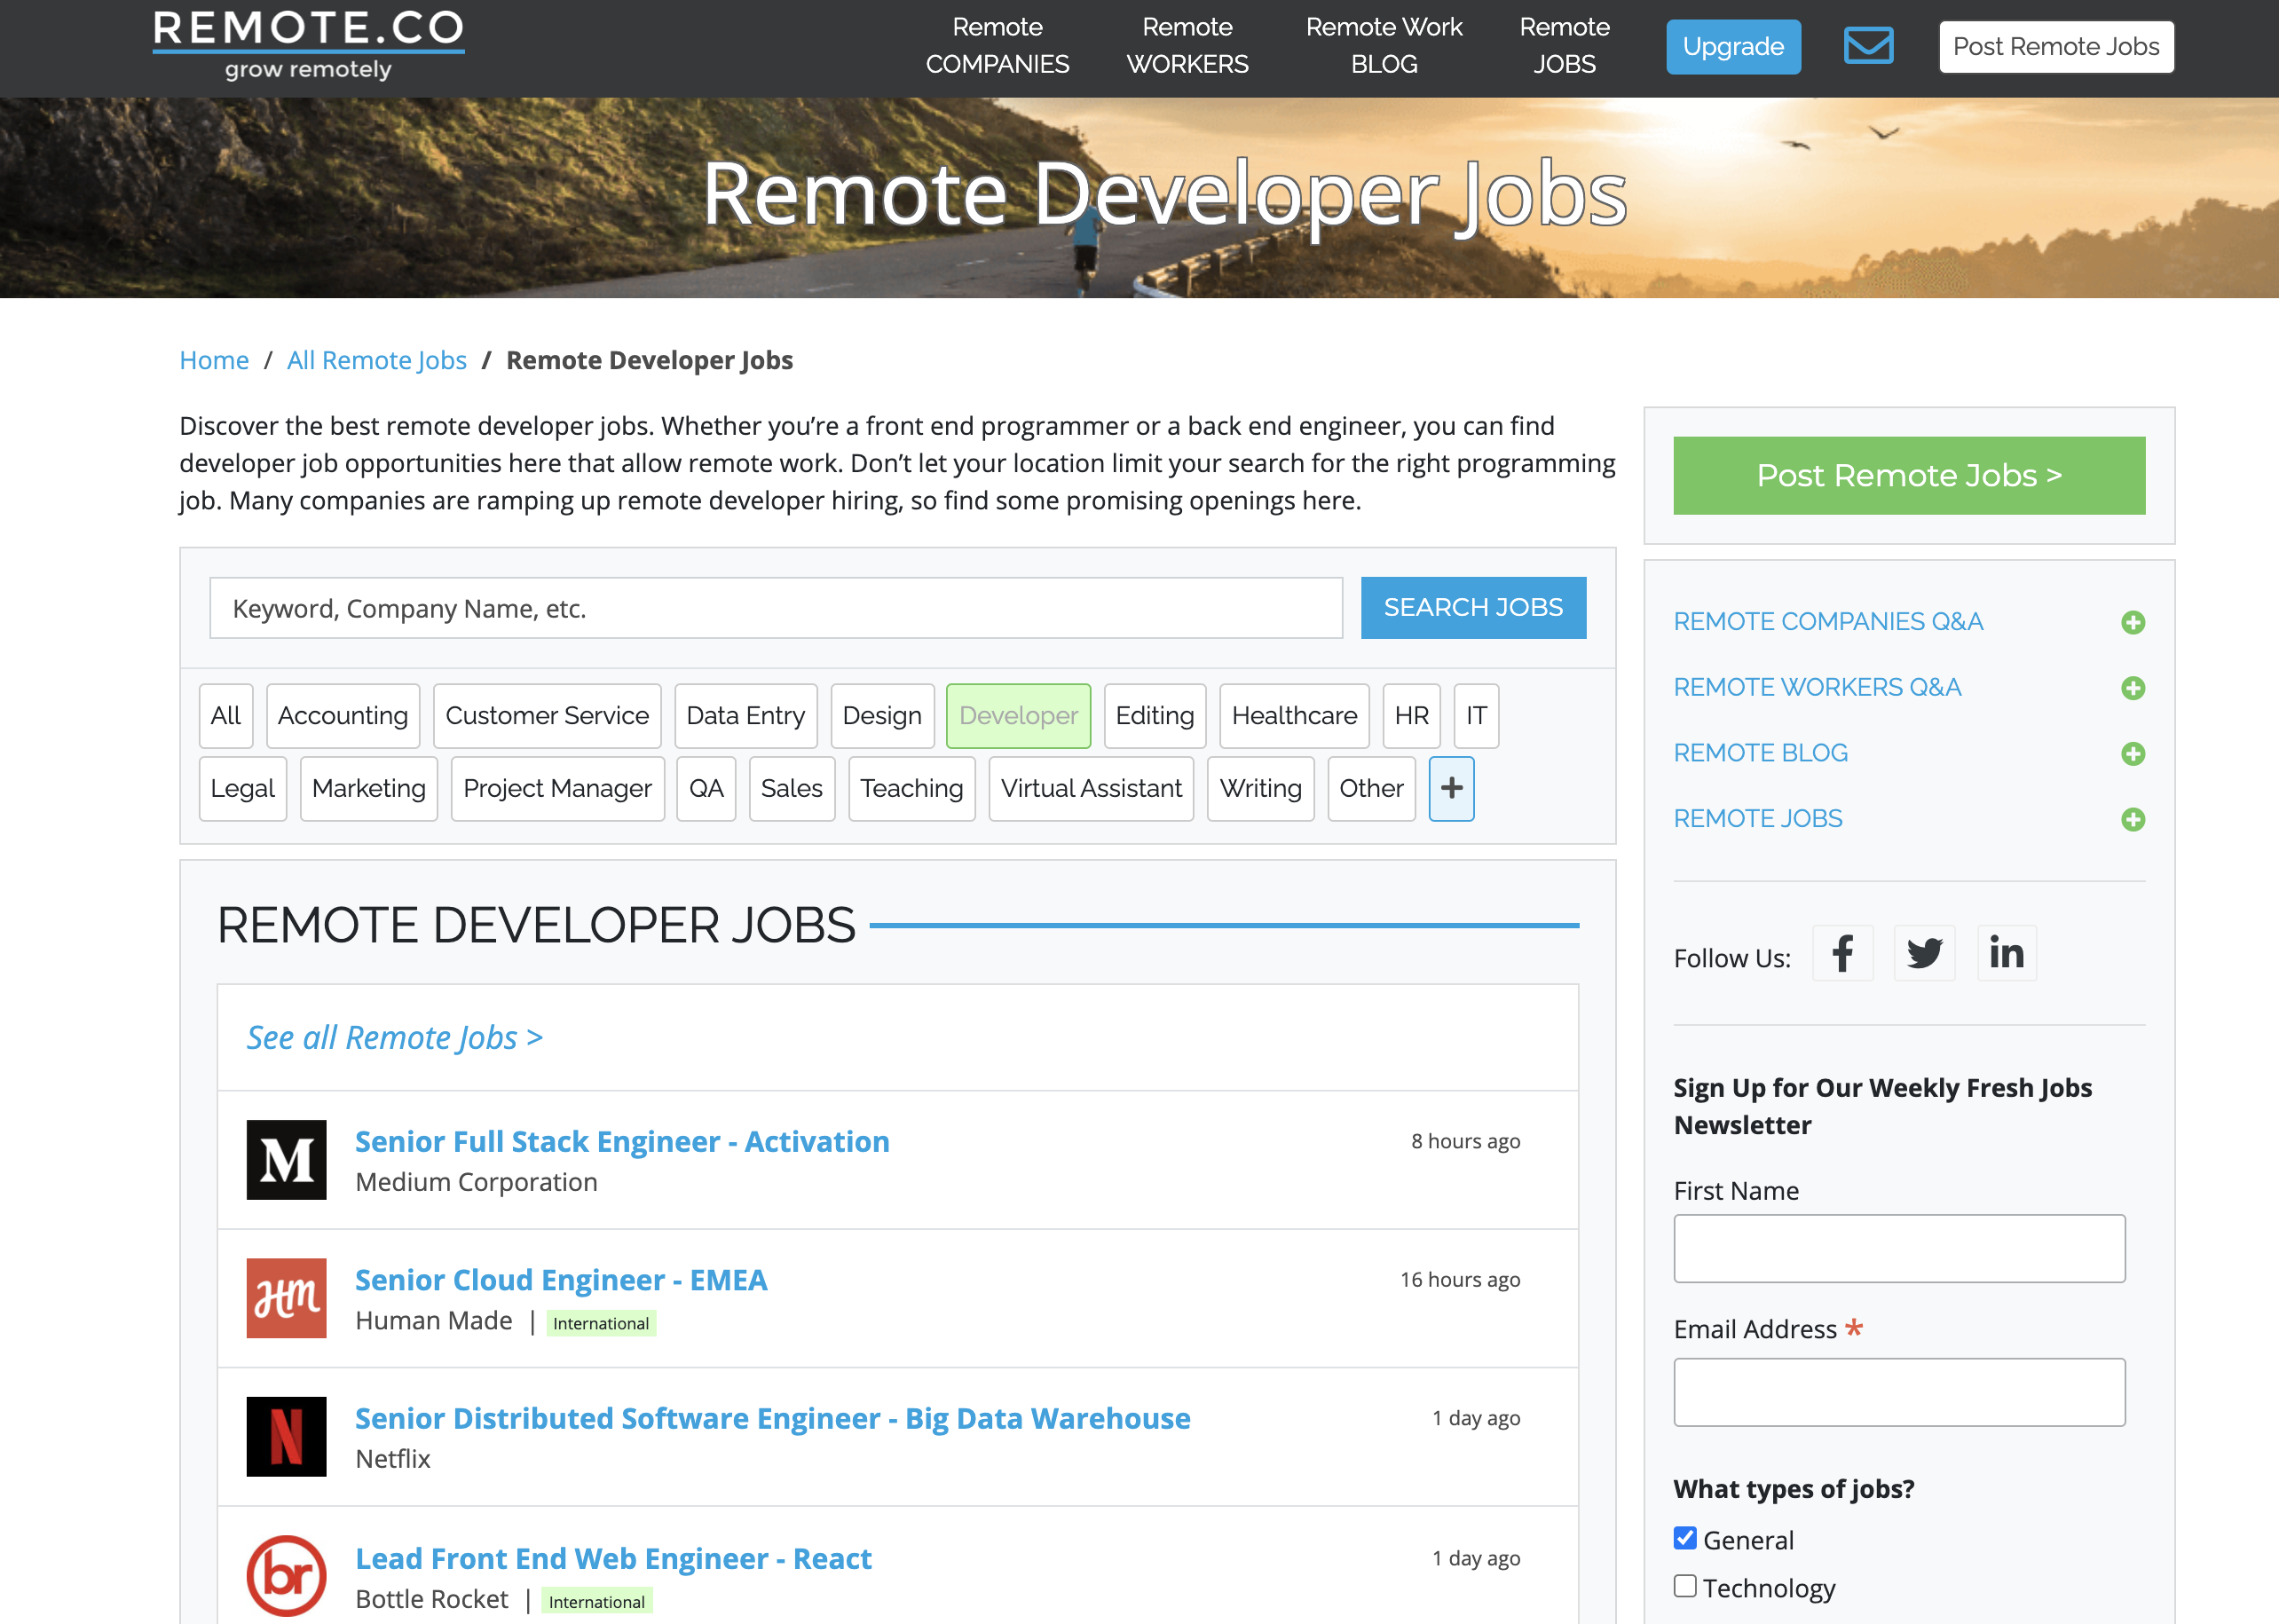 Remote.co homepage